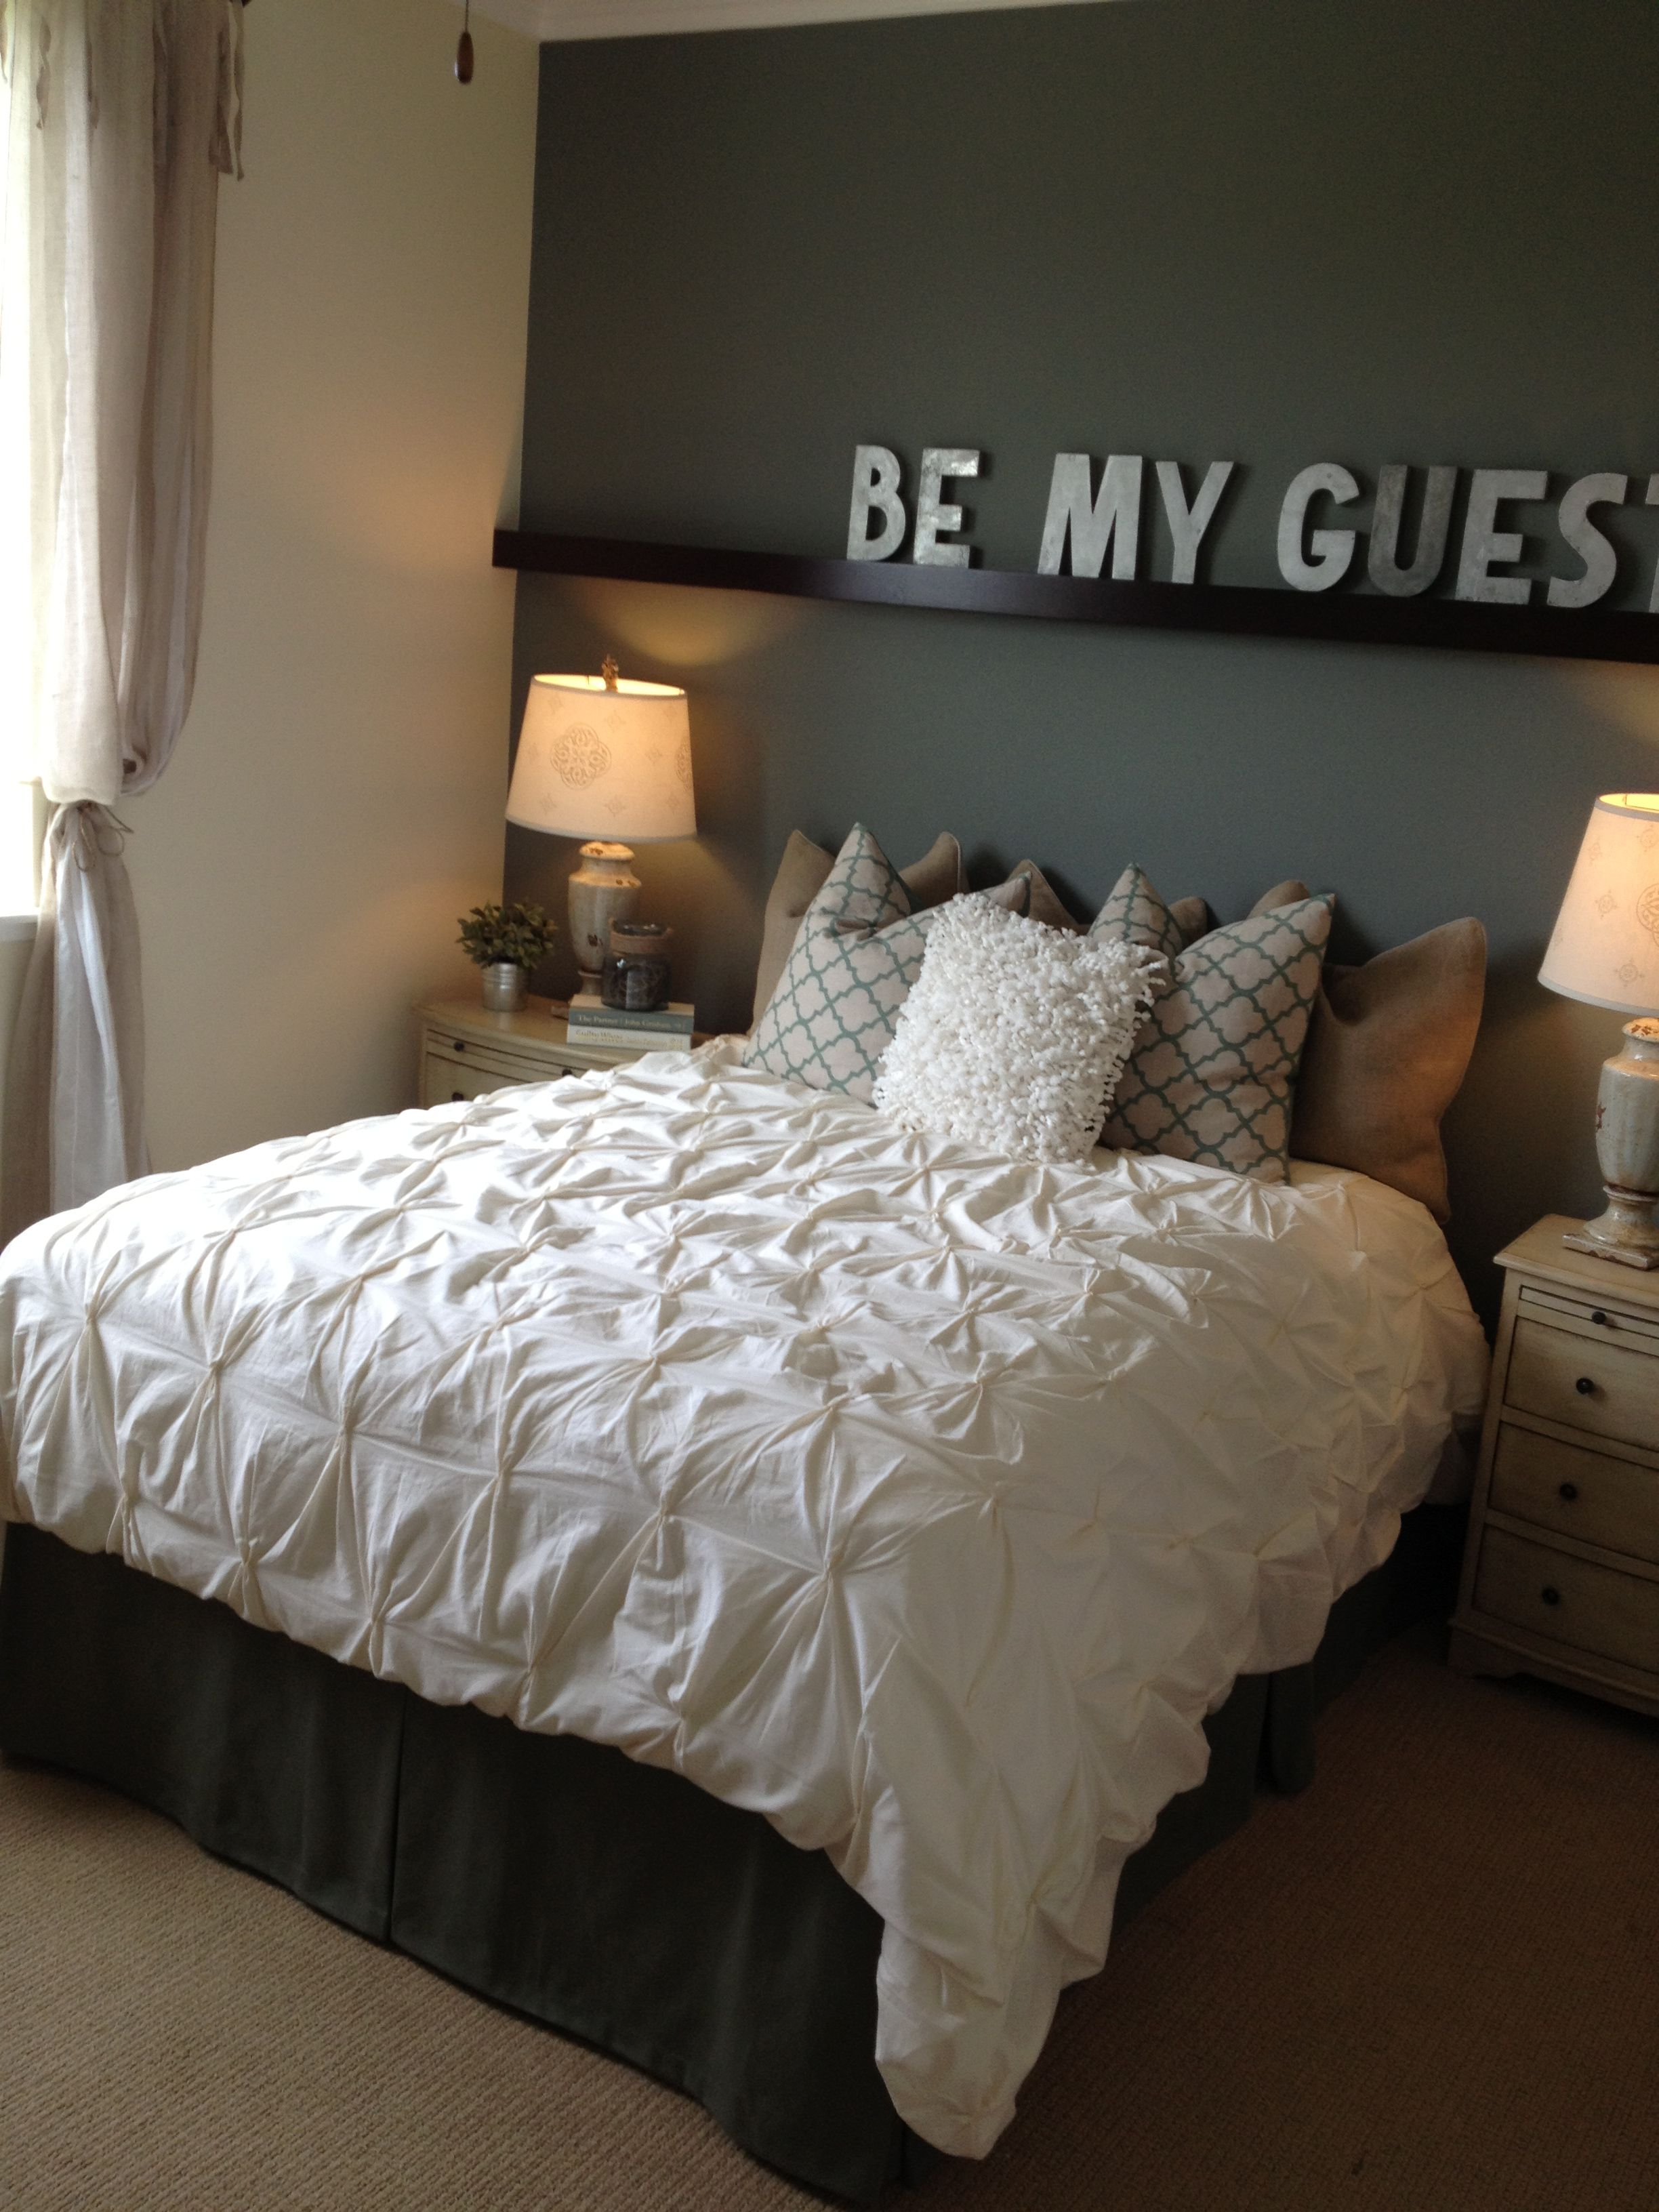 Home Remodeling Guide How To Find Home Remodeling Contractors Guest Bedroom Design Home Bedroom Home Remodeling